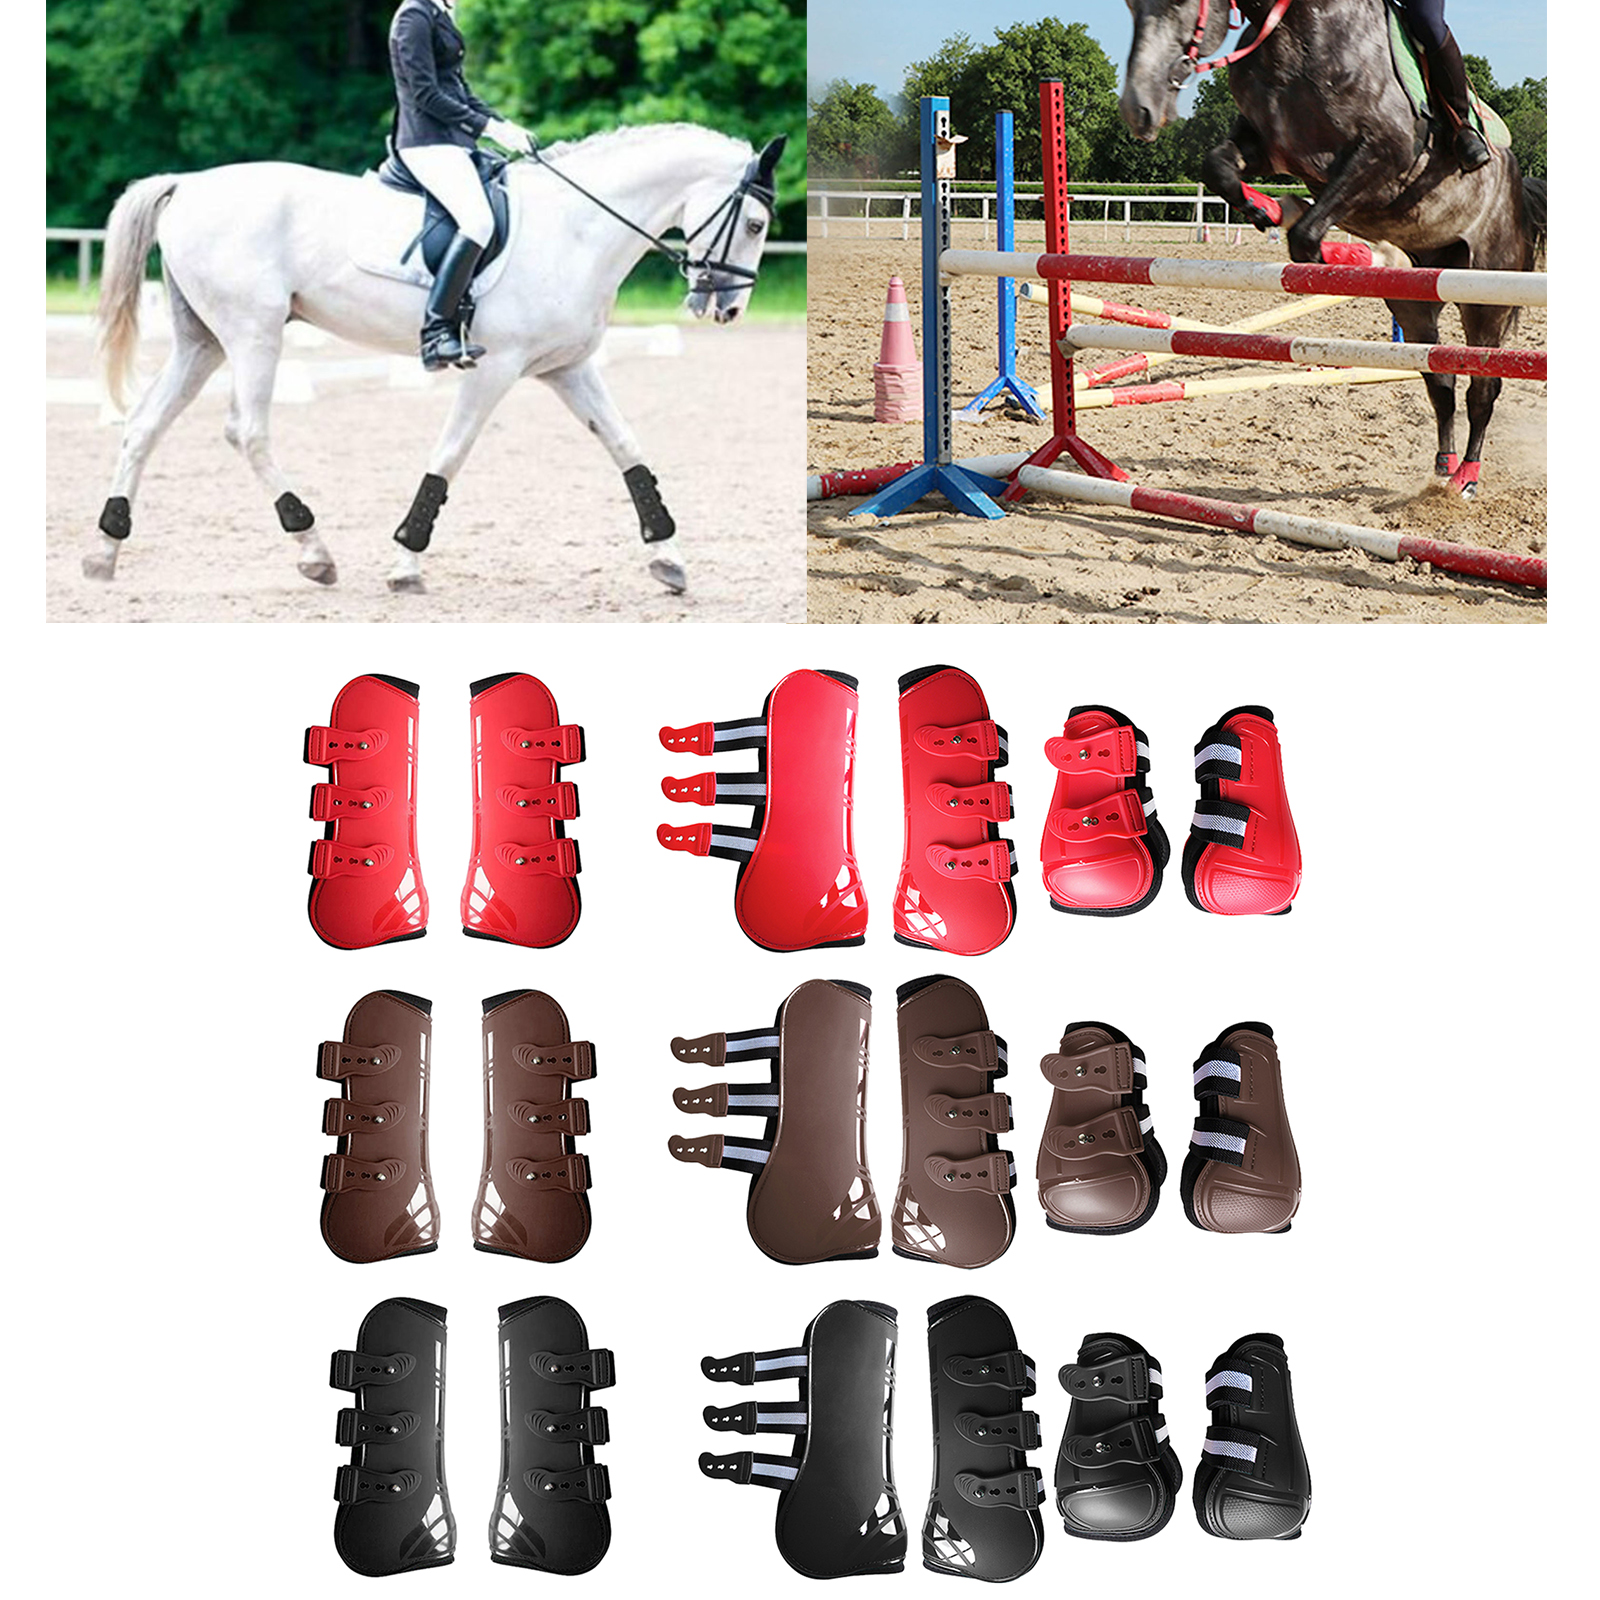 Horse Tendon Boot PU Horse Splint Boots Front Hind Set Front/Rear Horse Bell Boots Legs Equine Protective Gear for Horse Pony